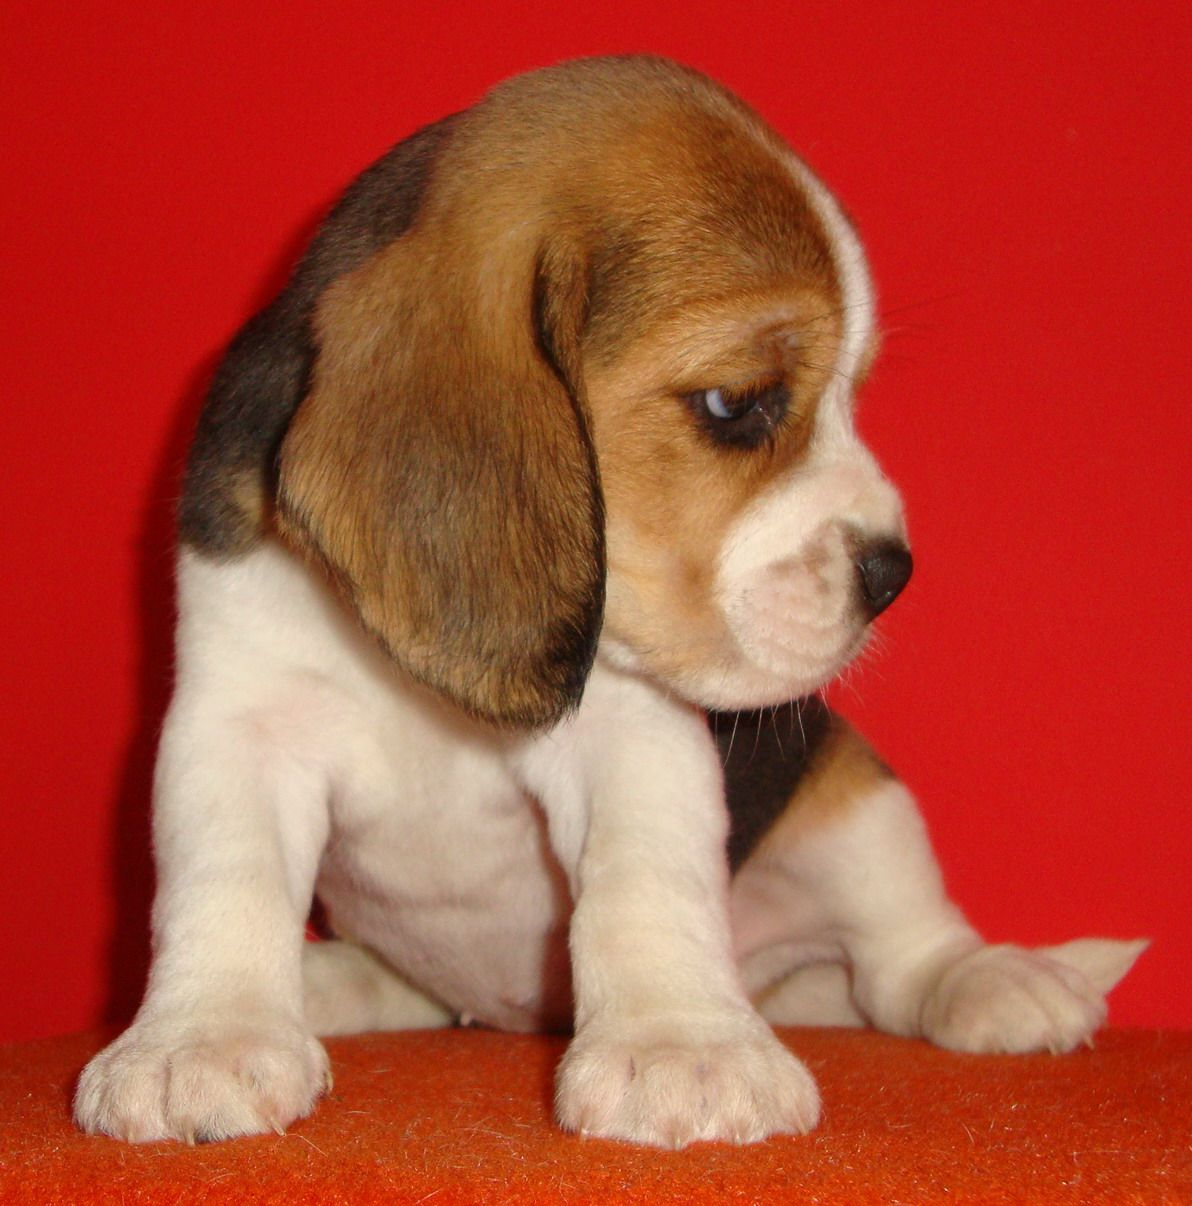 Top Small Beagle Adorable Dog - 0212f40e188e73de5f11f3407b570955  Picture_183327  .jpg